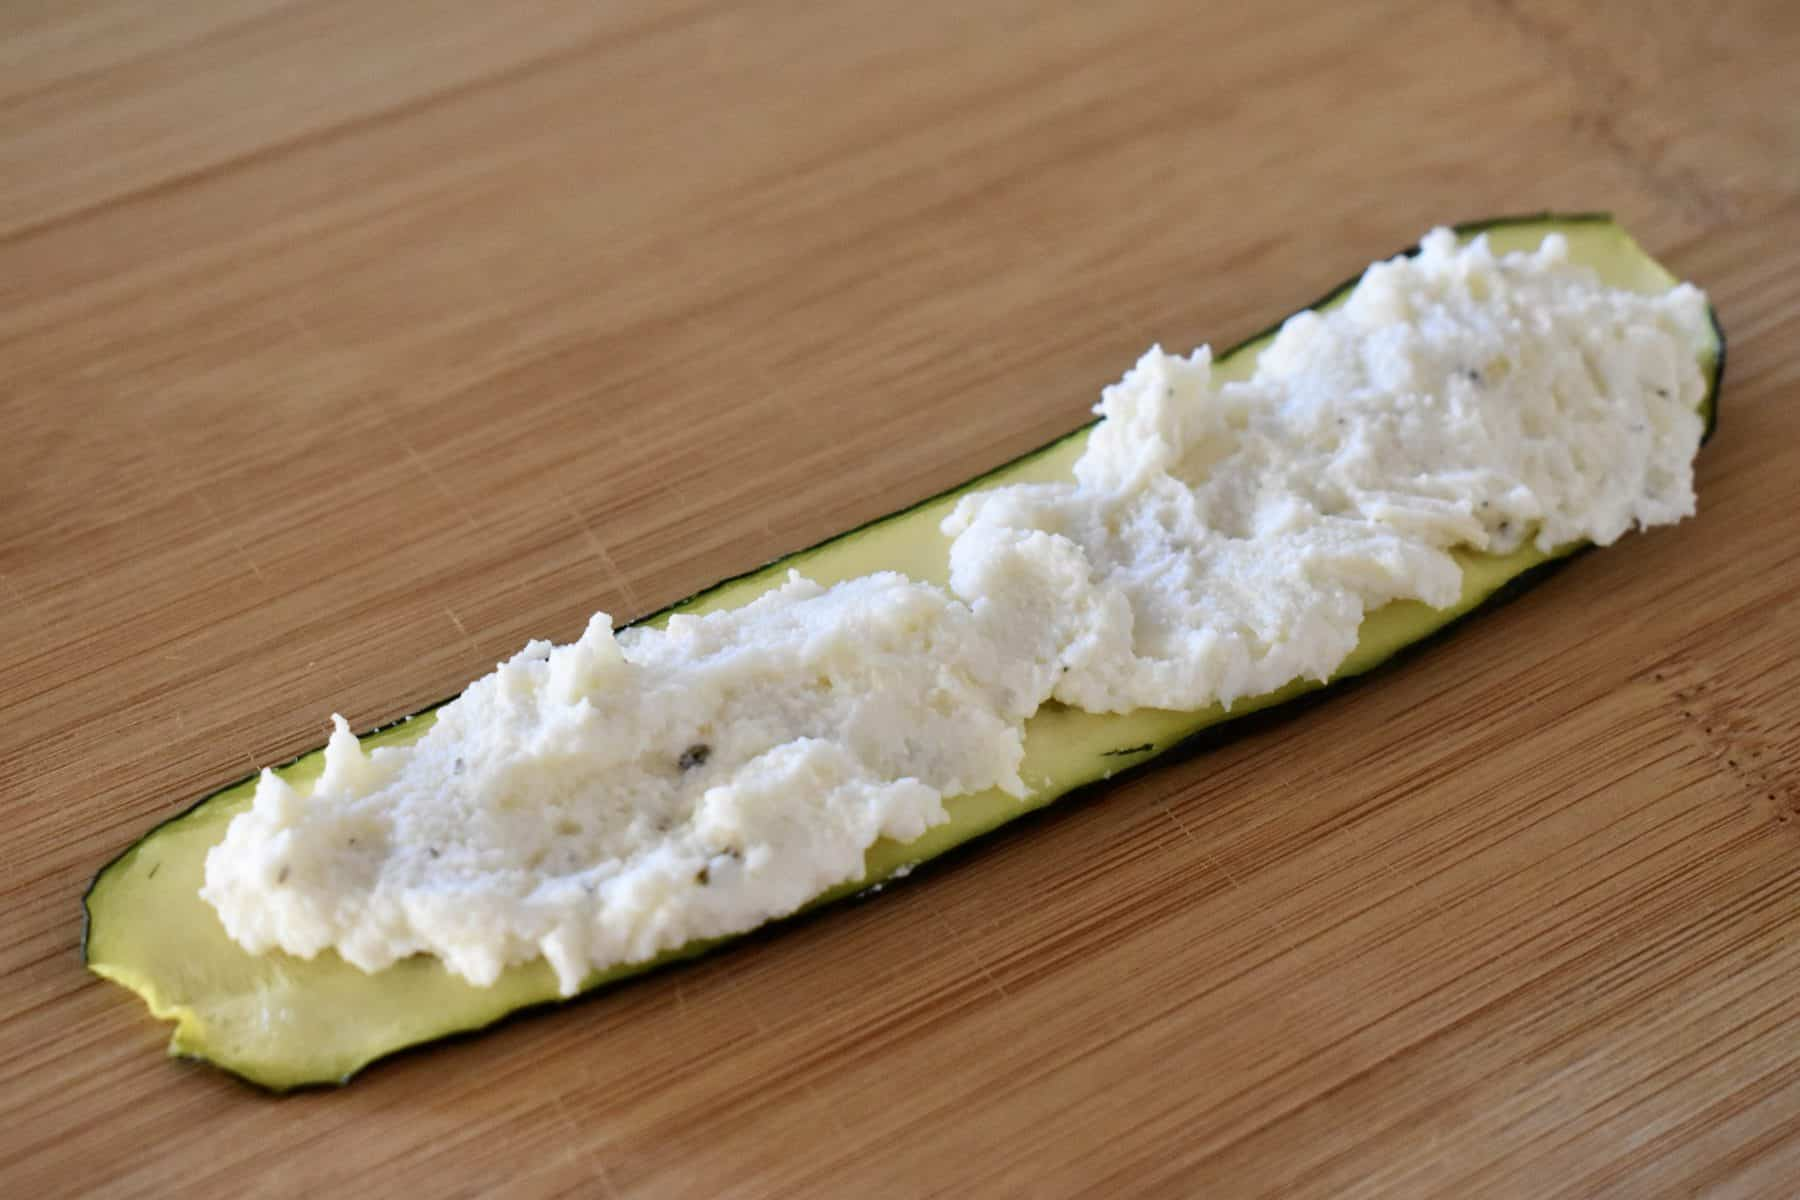 ricotta cheese mixture spread over top of the cooked zucchini slices.